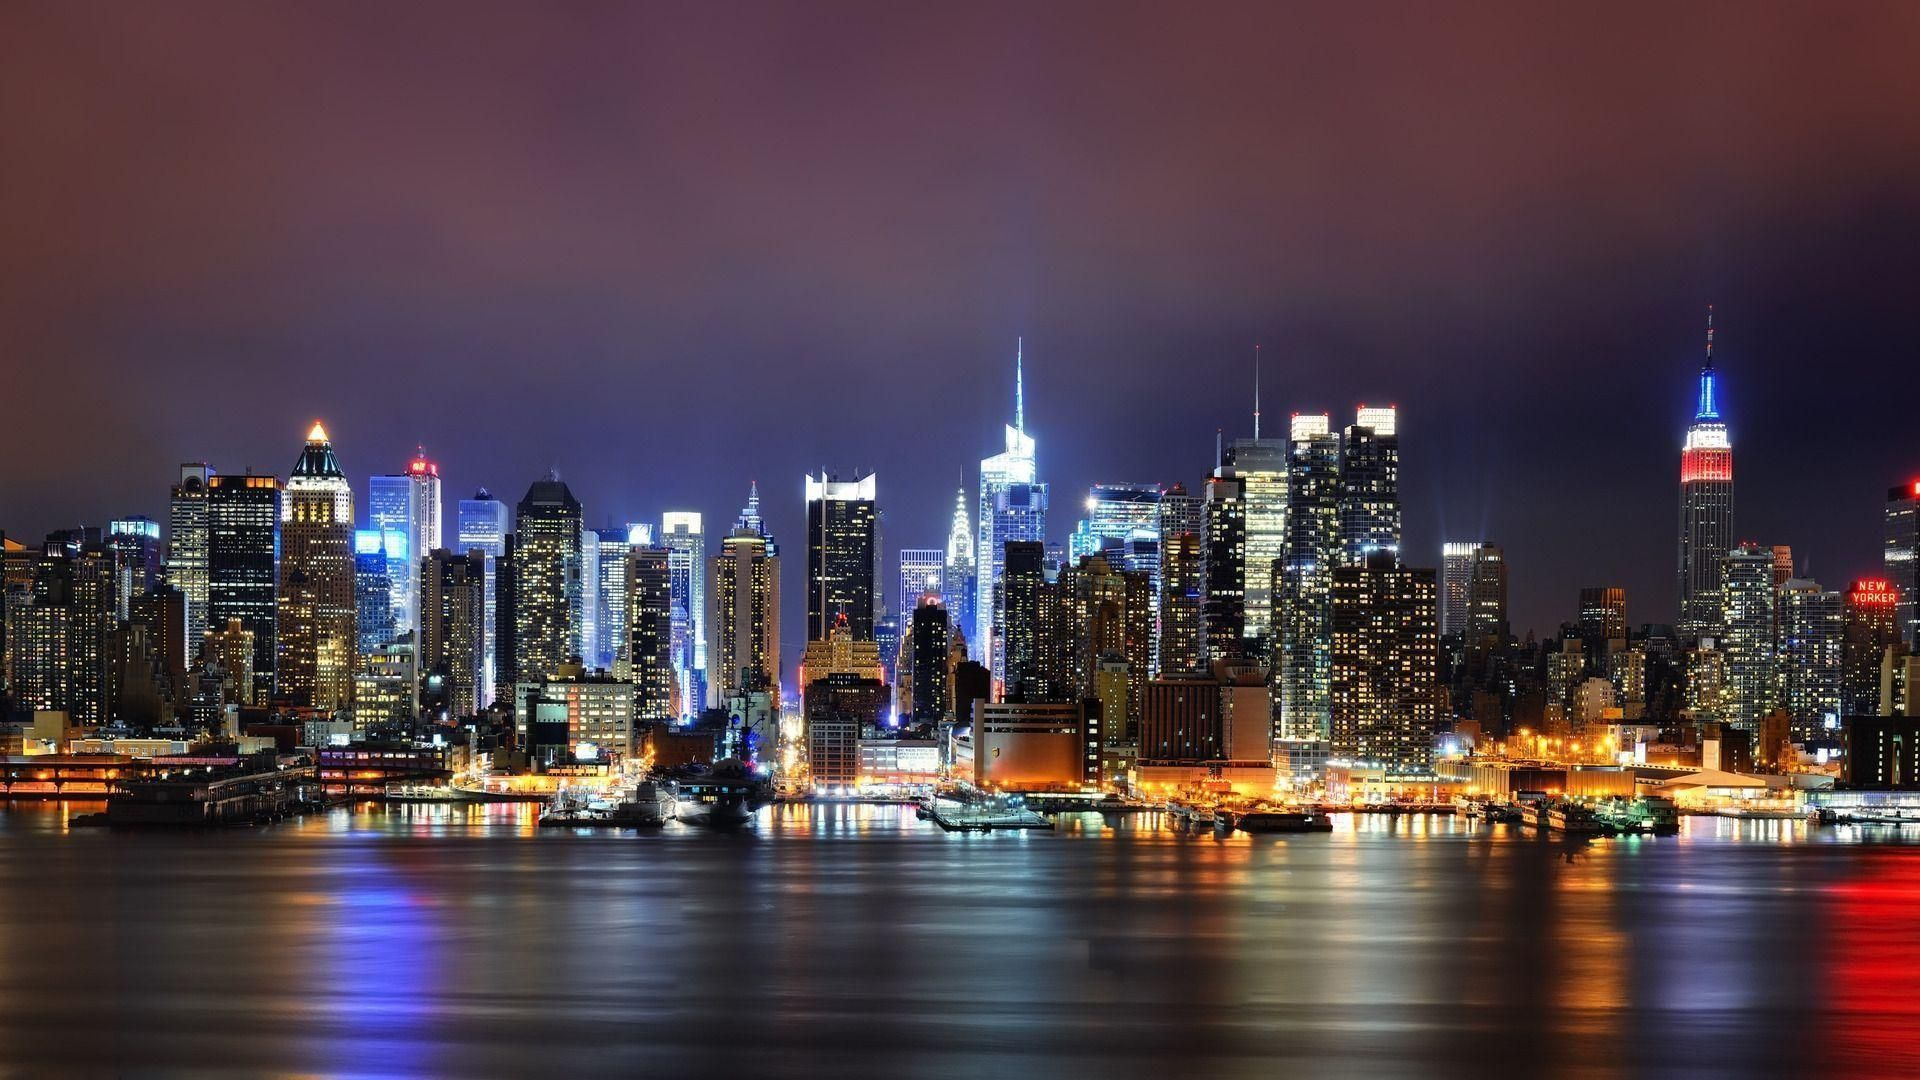 New York City Wallpapers Hd Pictures Wallpaper Cave New York Wallpaper City Wallpaper York Wallpaper